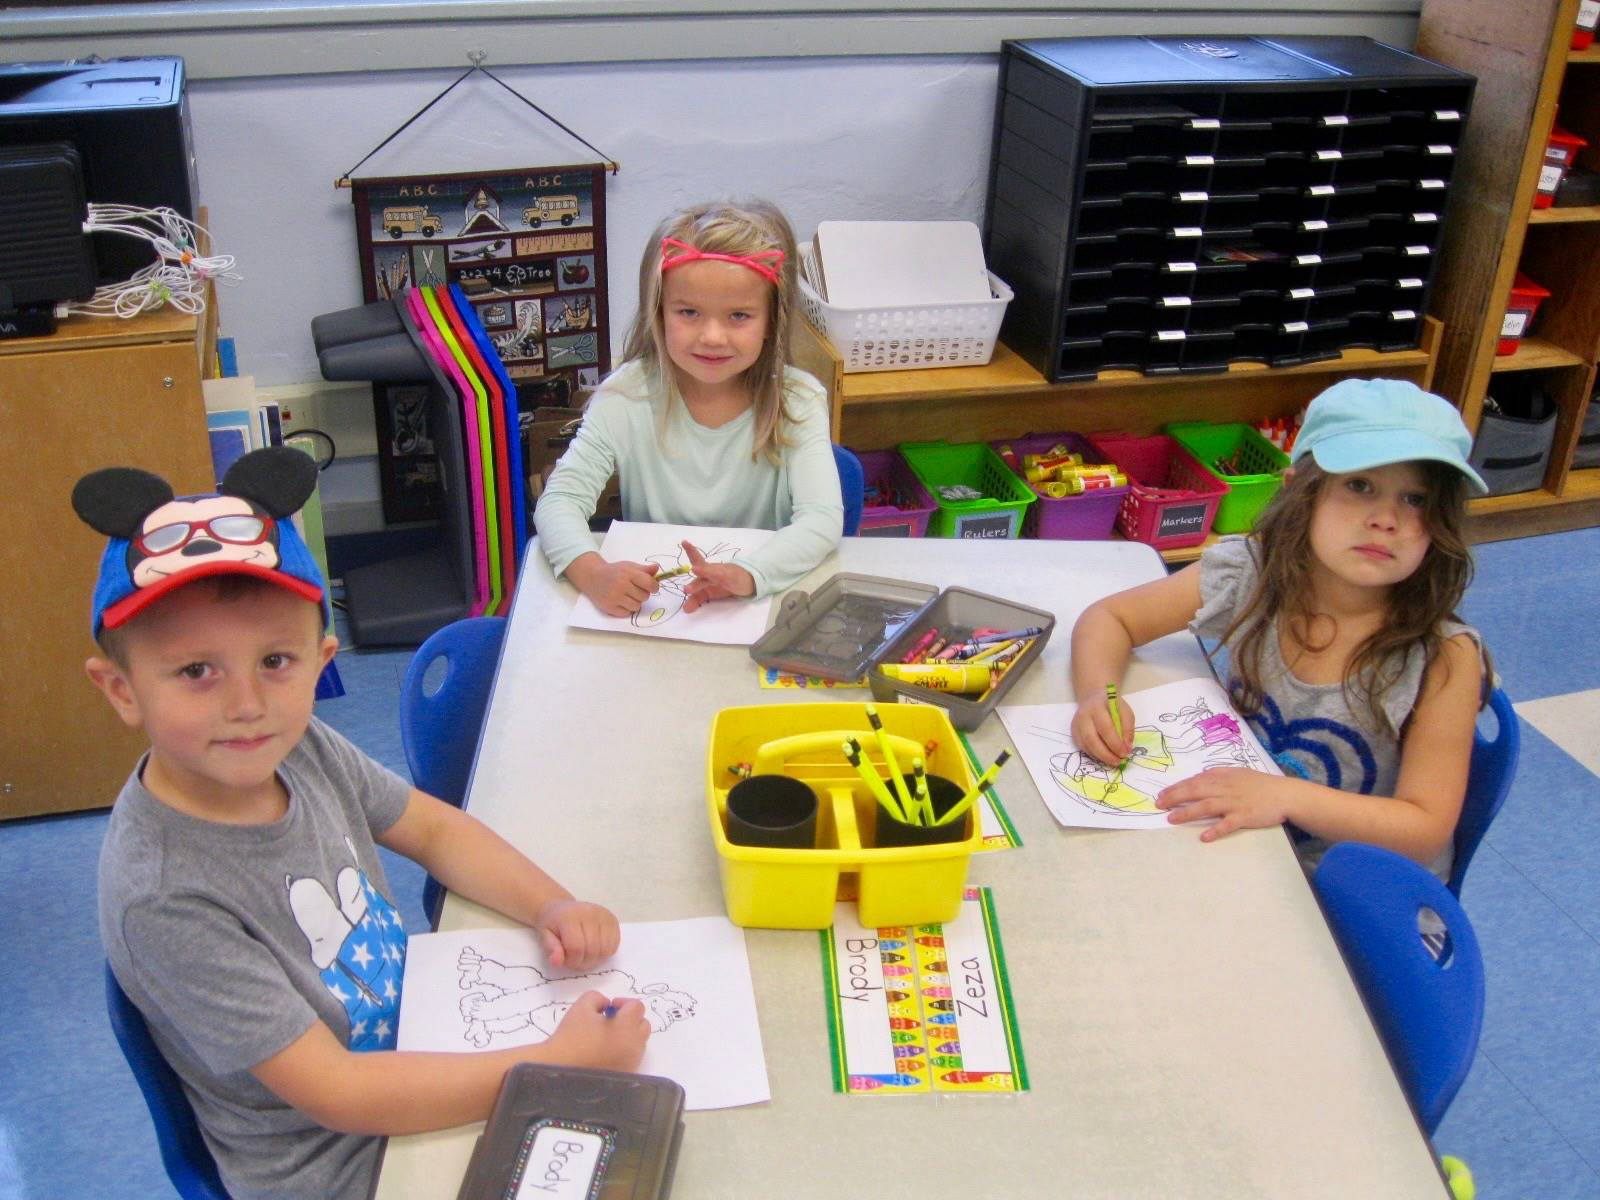 3 students work with hats on.